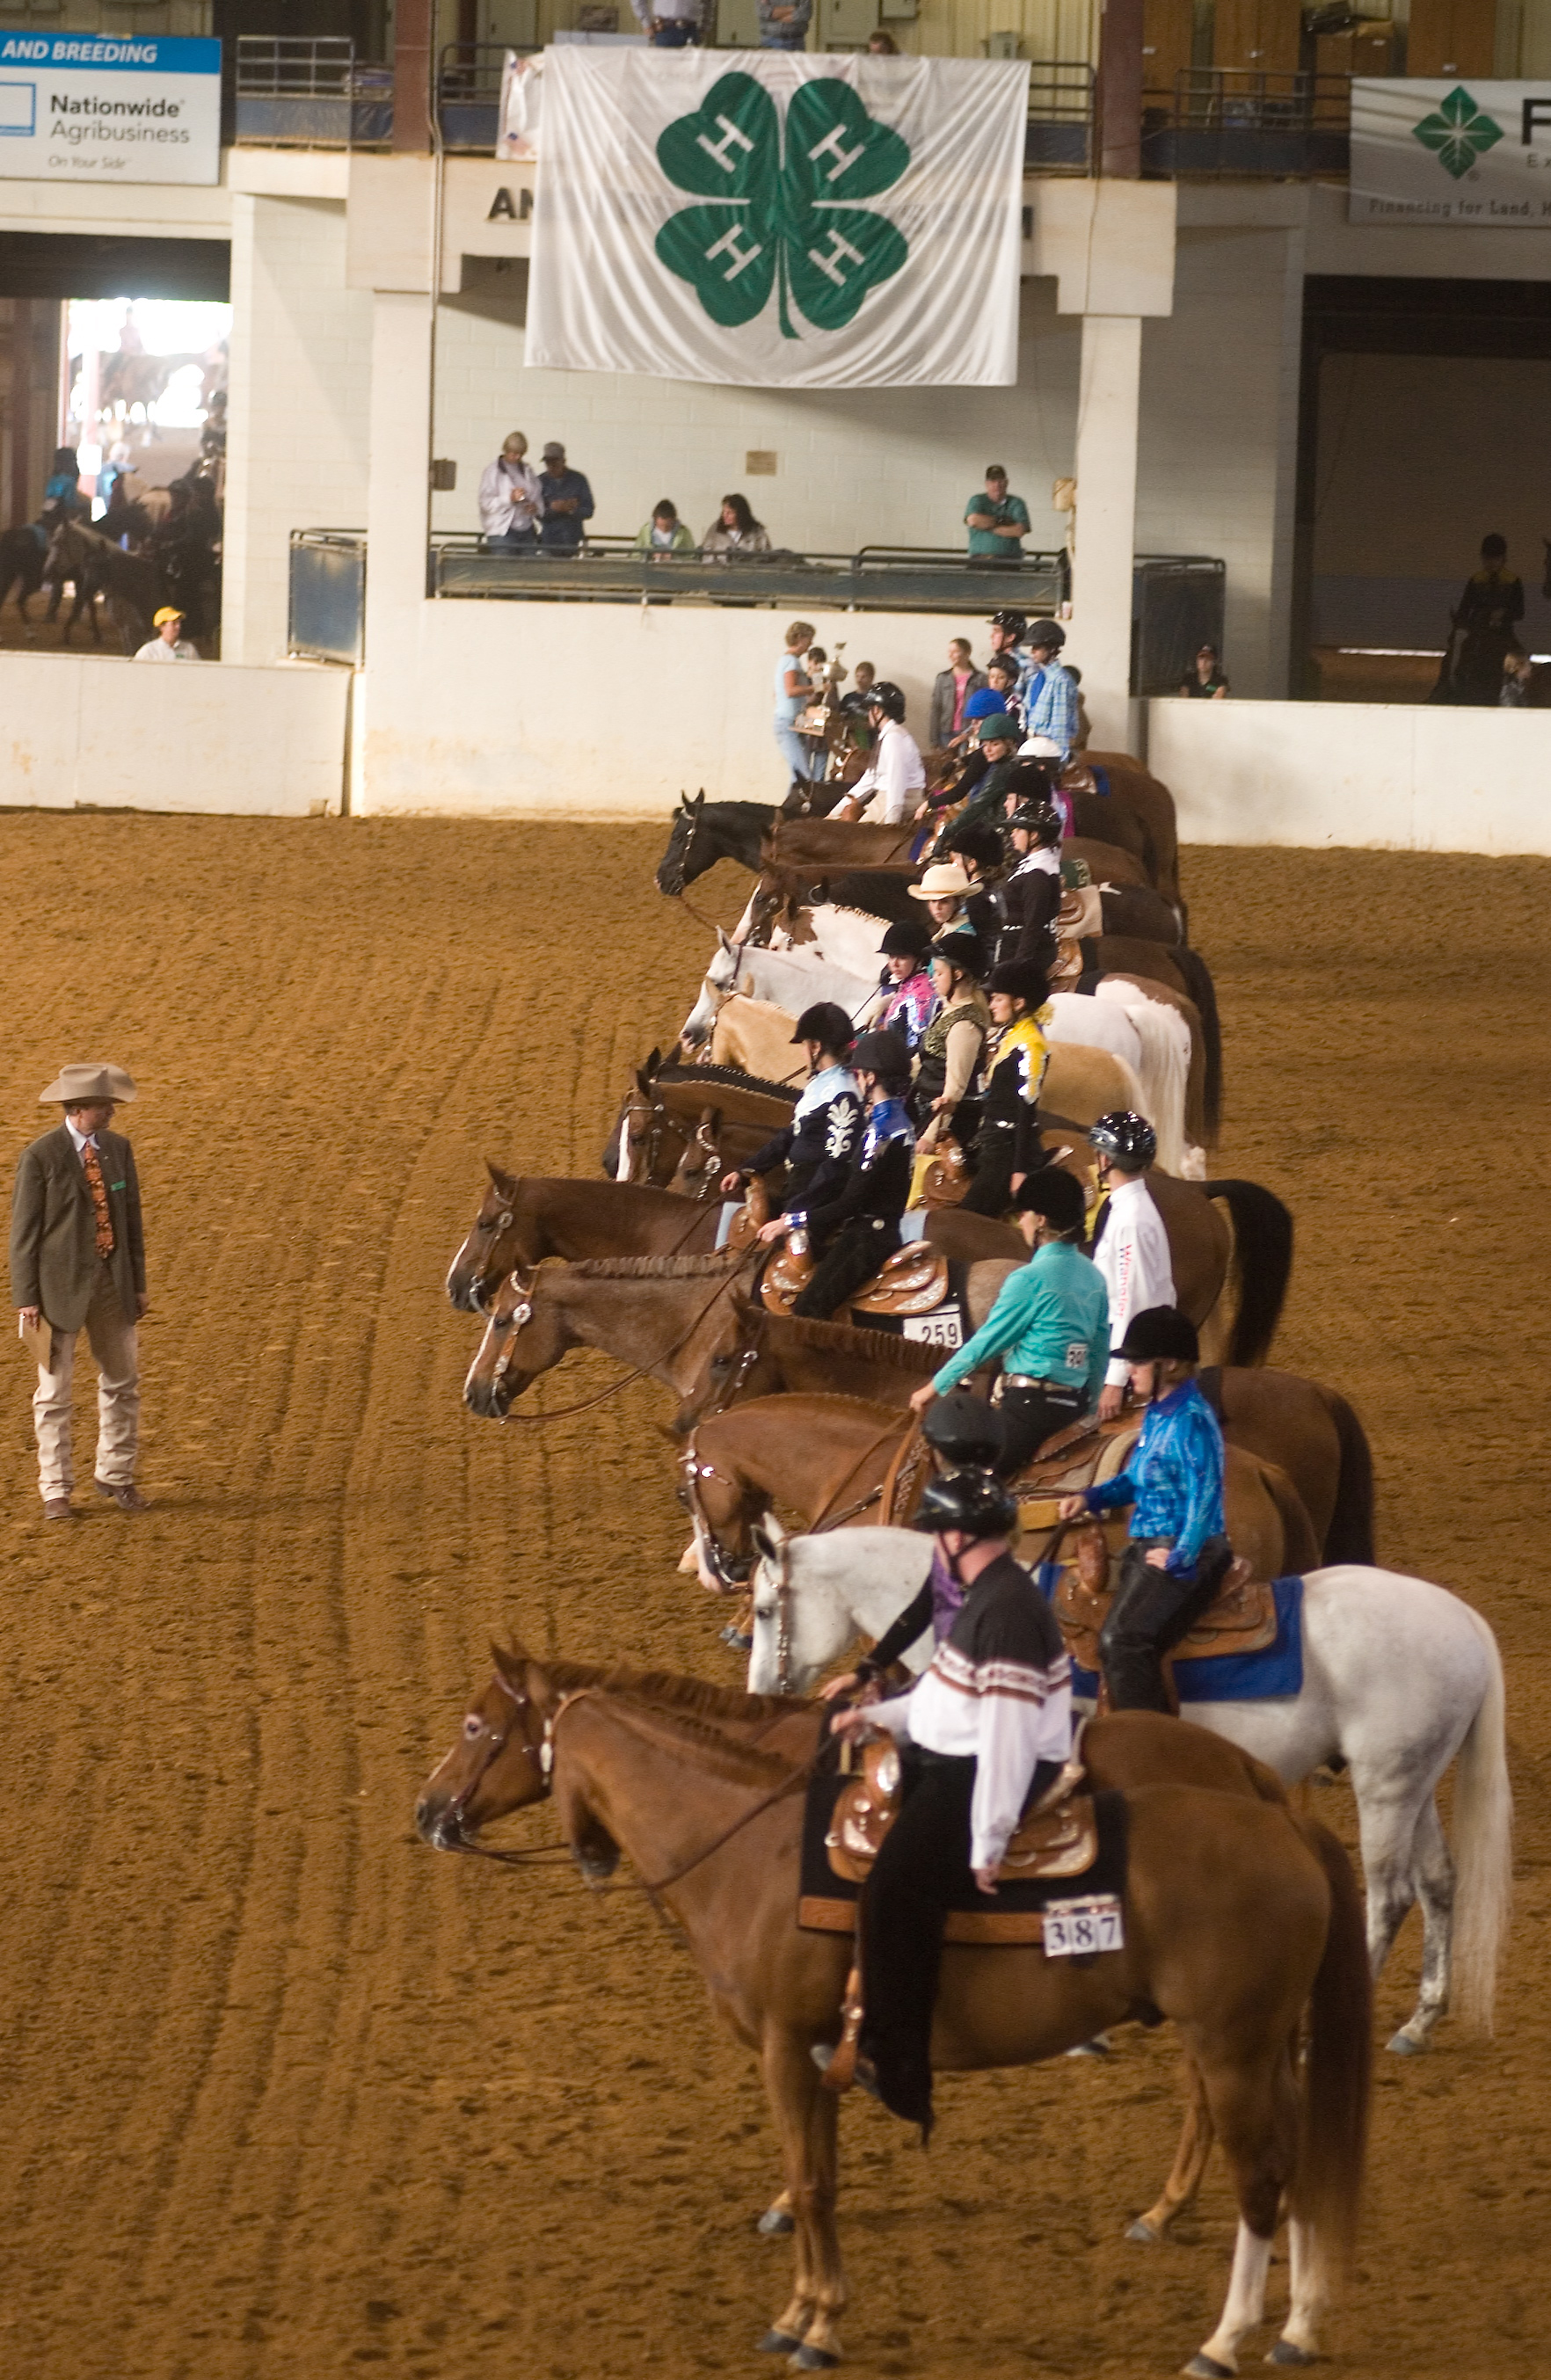 4-H members showing their horses at the State 4-H Horse Show.